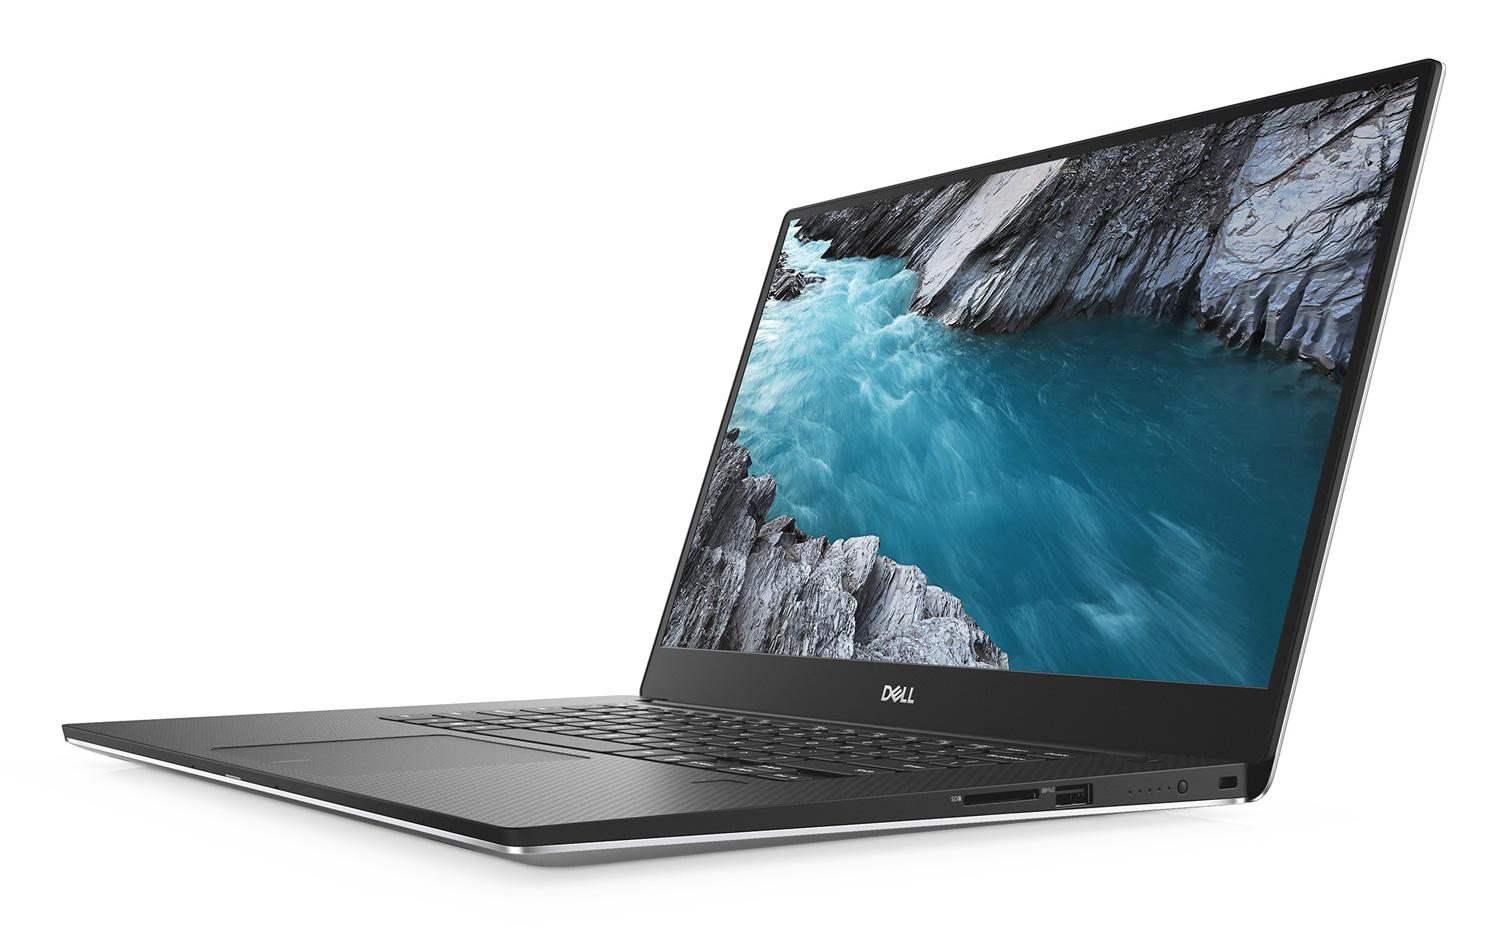 Ordinateur portable Dell XPS 15 7590 (1680) - OLED 4K, GTX 1650, SSD 1 To - photo 3